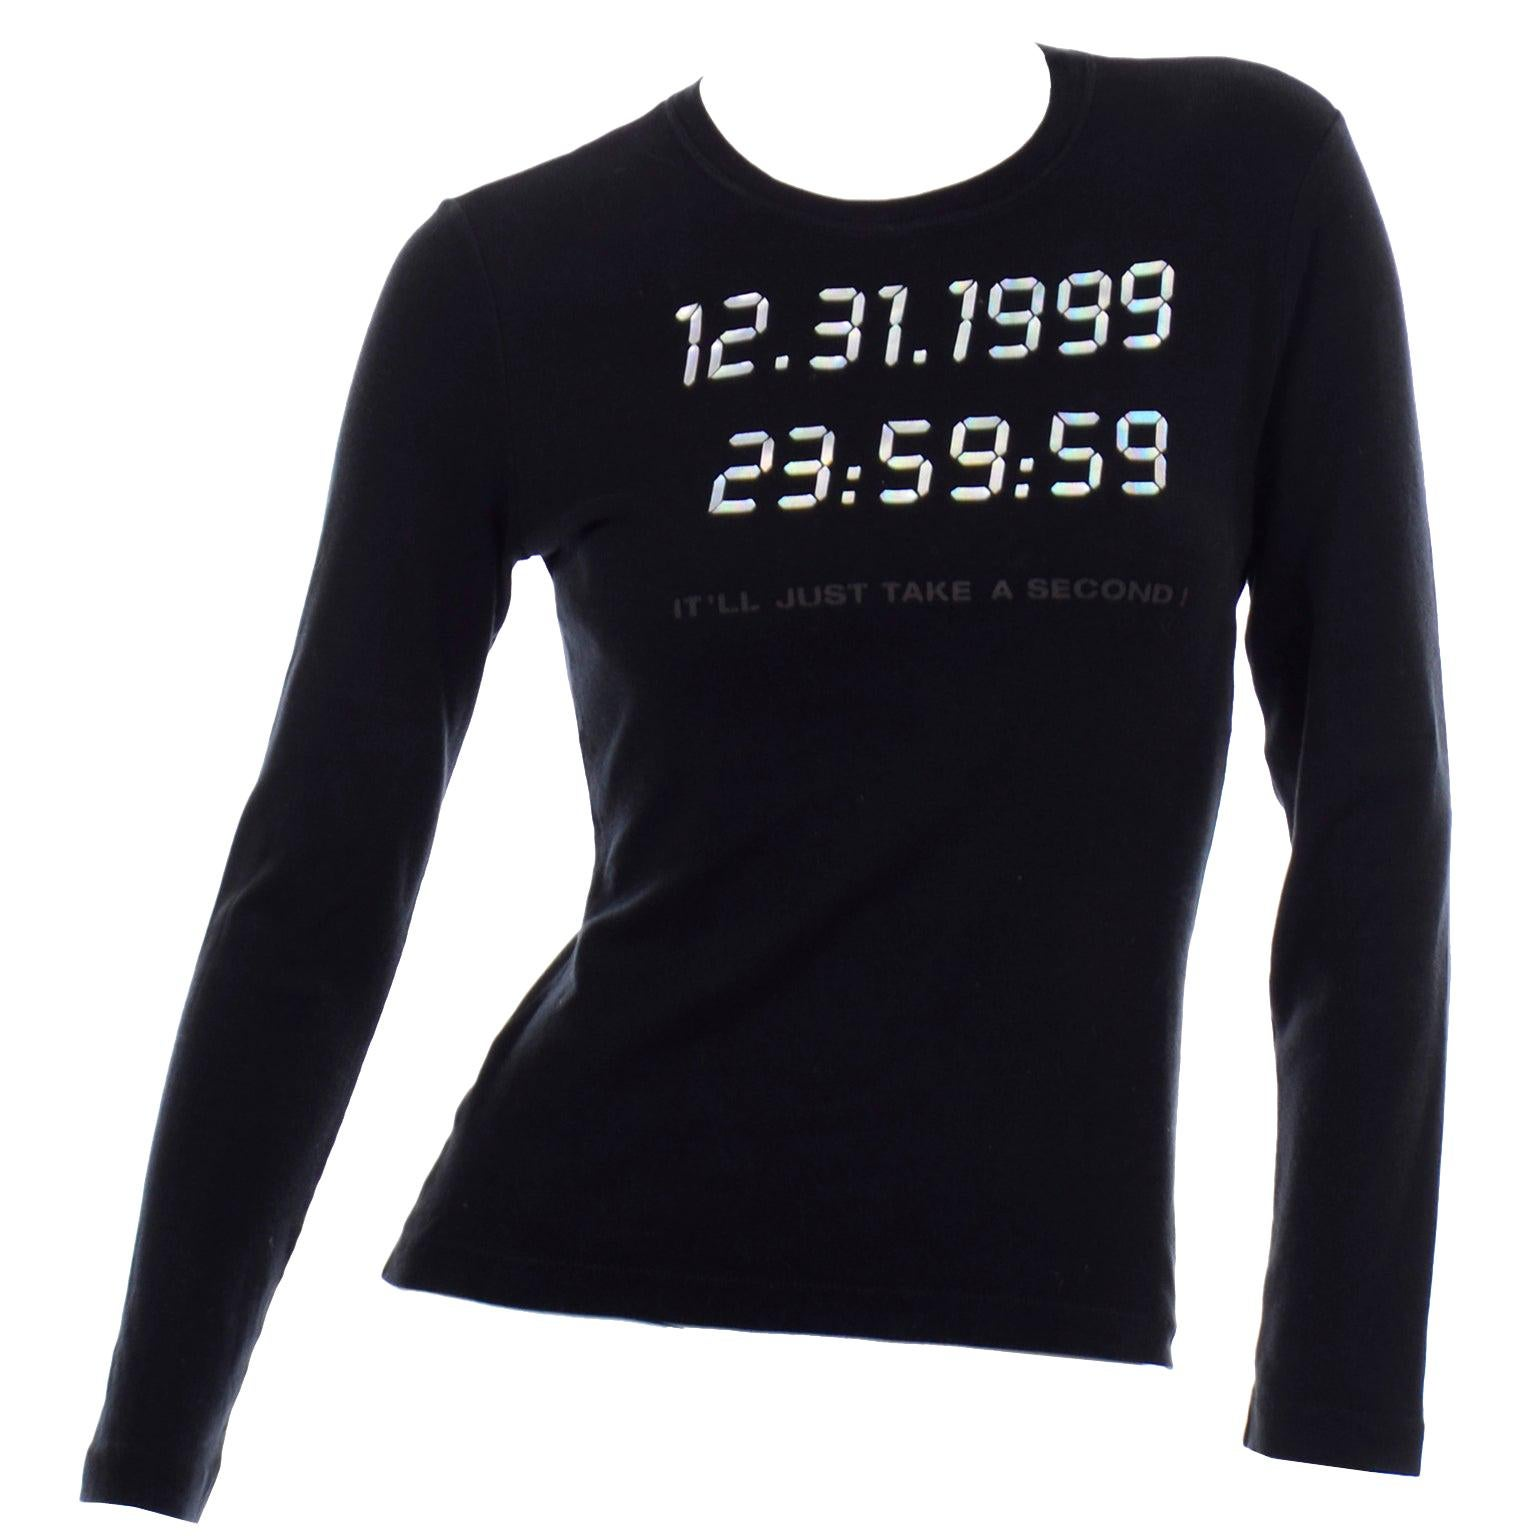 Moschino  Y2K Vintage Top 12 31 1999 Only Take a Second Black Long Sleeve Shirt